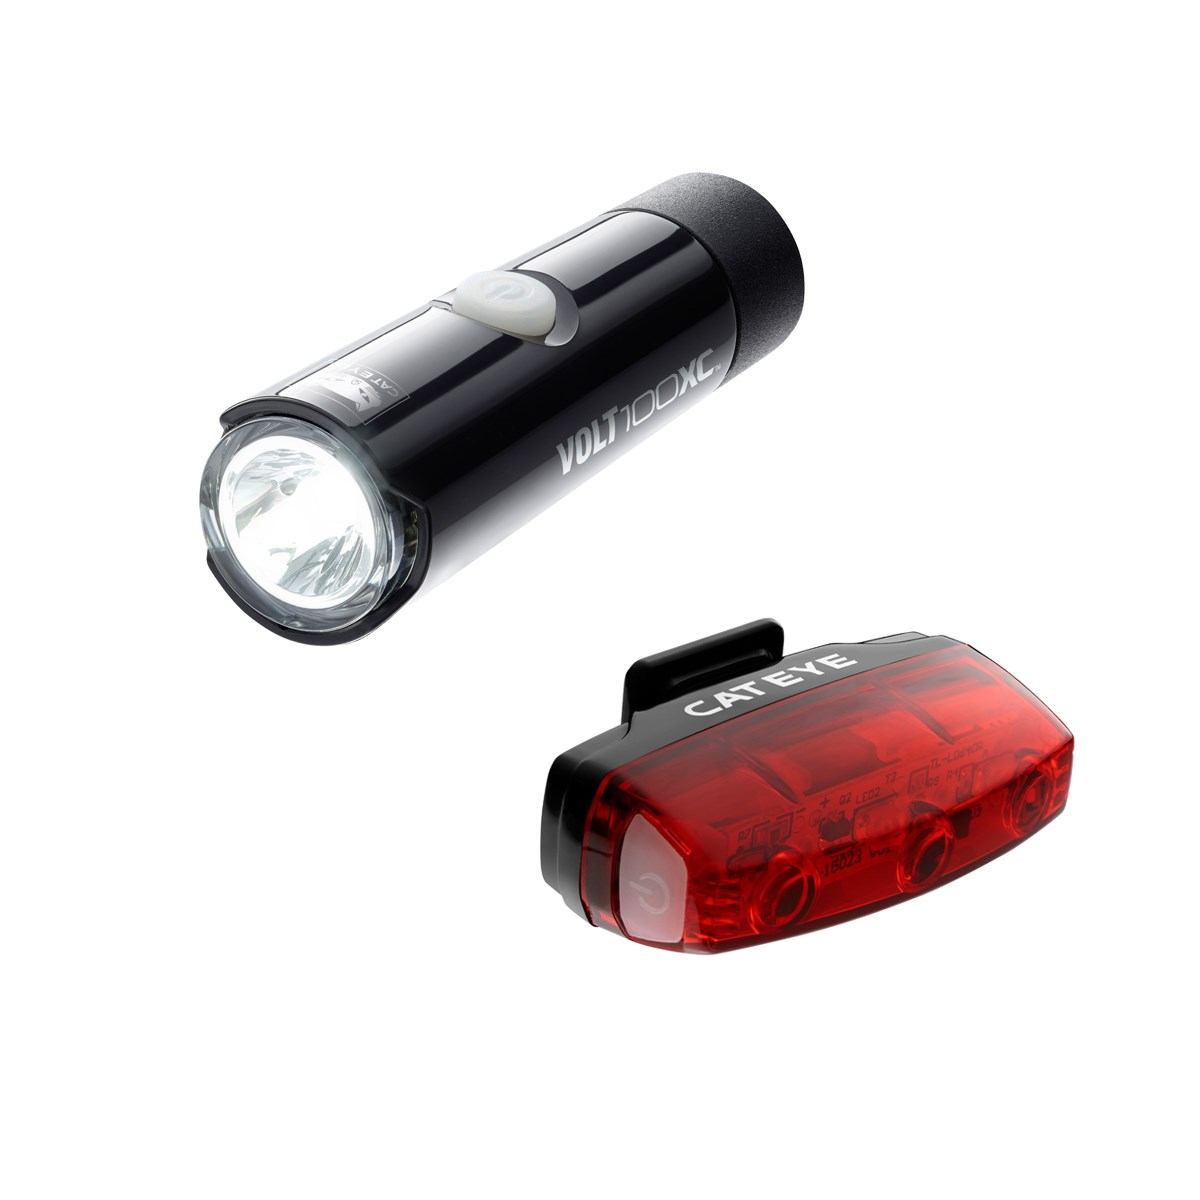 CATEYE VOLT 100 XC FRONT LIGHT & RAPID MICRO REAR USB RECHARGEABLE LIGHT SET Image